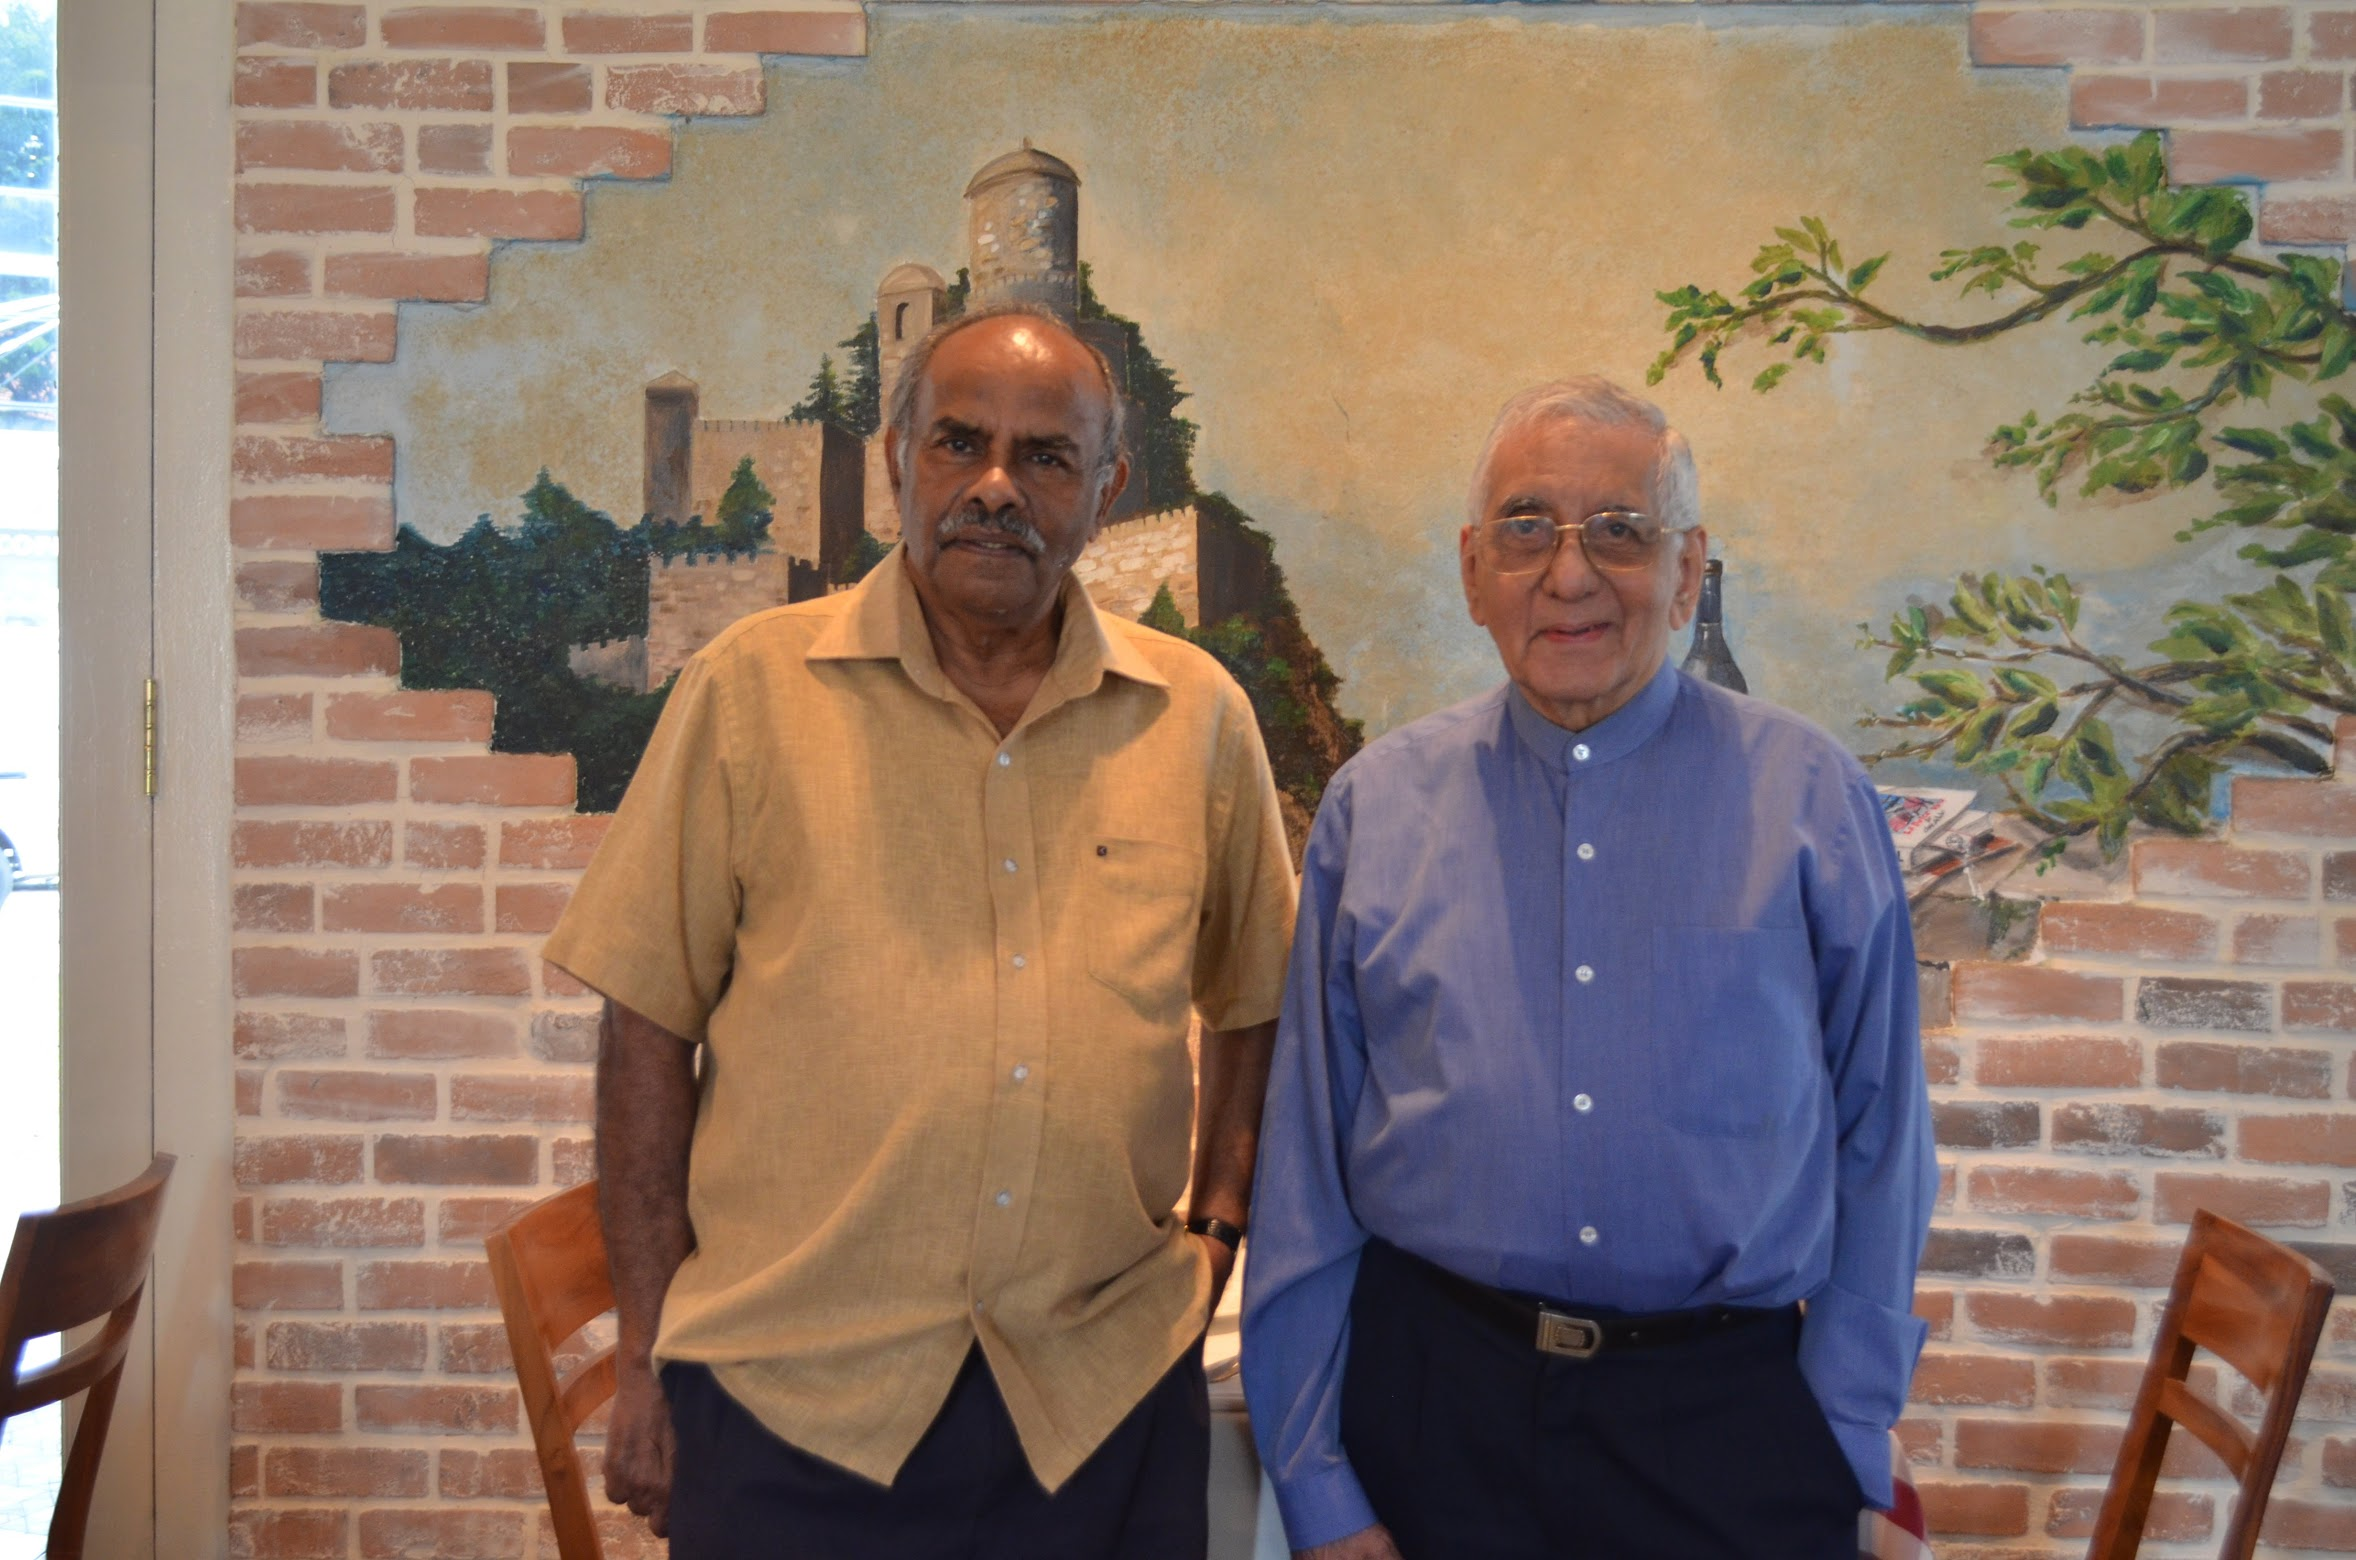 K Kesavapany is also the president of Inter-Religious Organisation (IRO) of Singapore. He is seen here with past President Ervad (Priest) Rustom M. Ghadiali. Photo: Connected to India